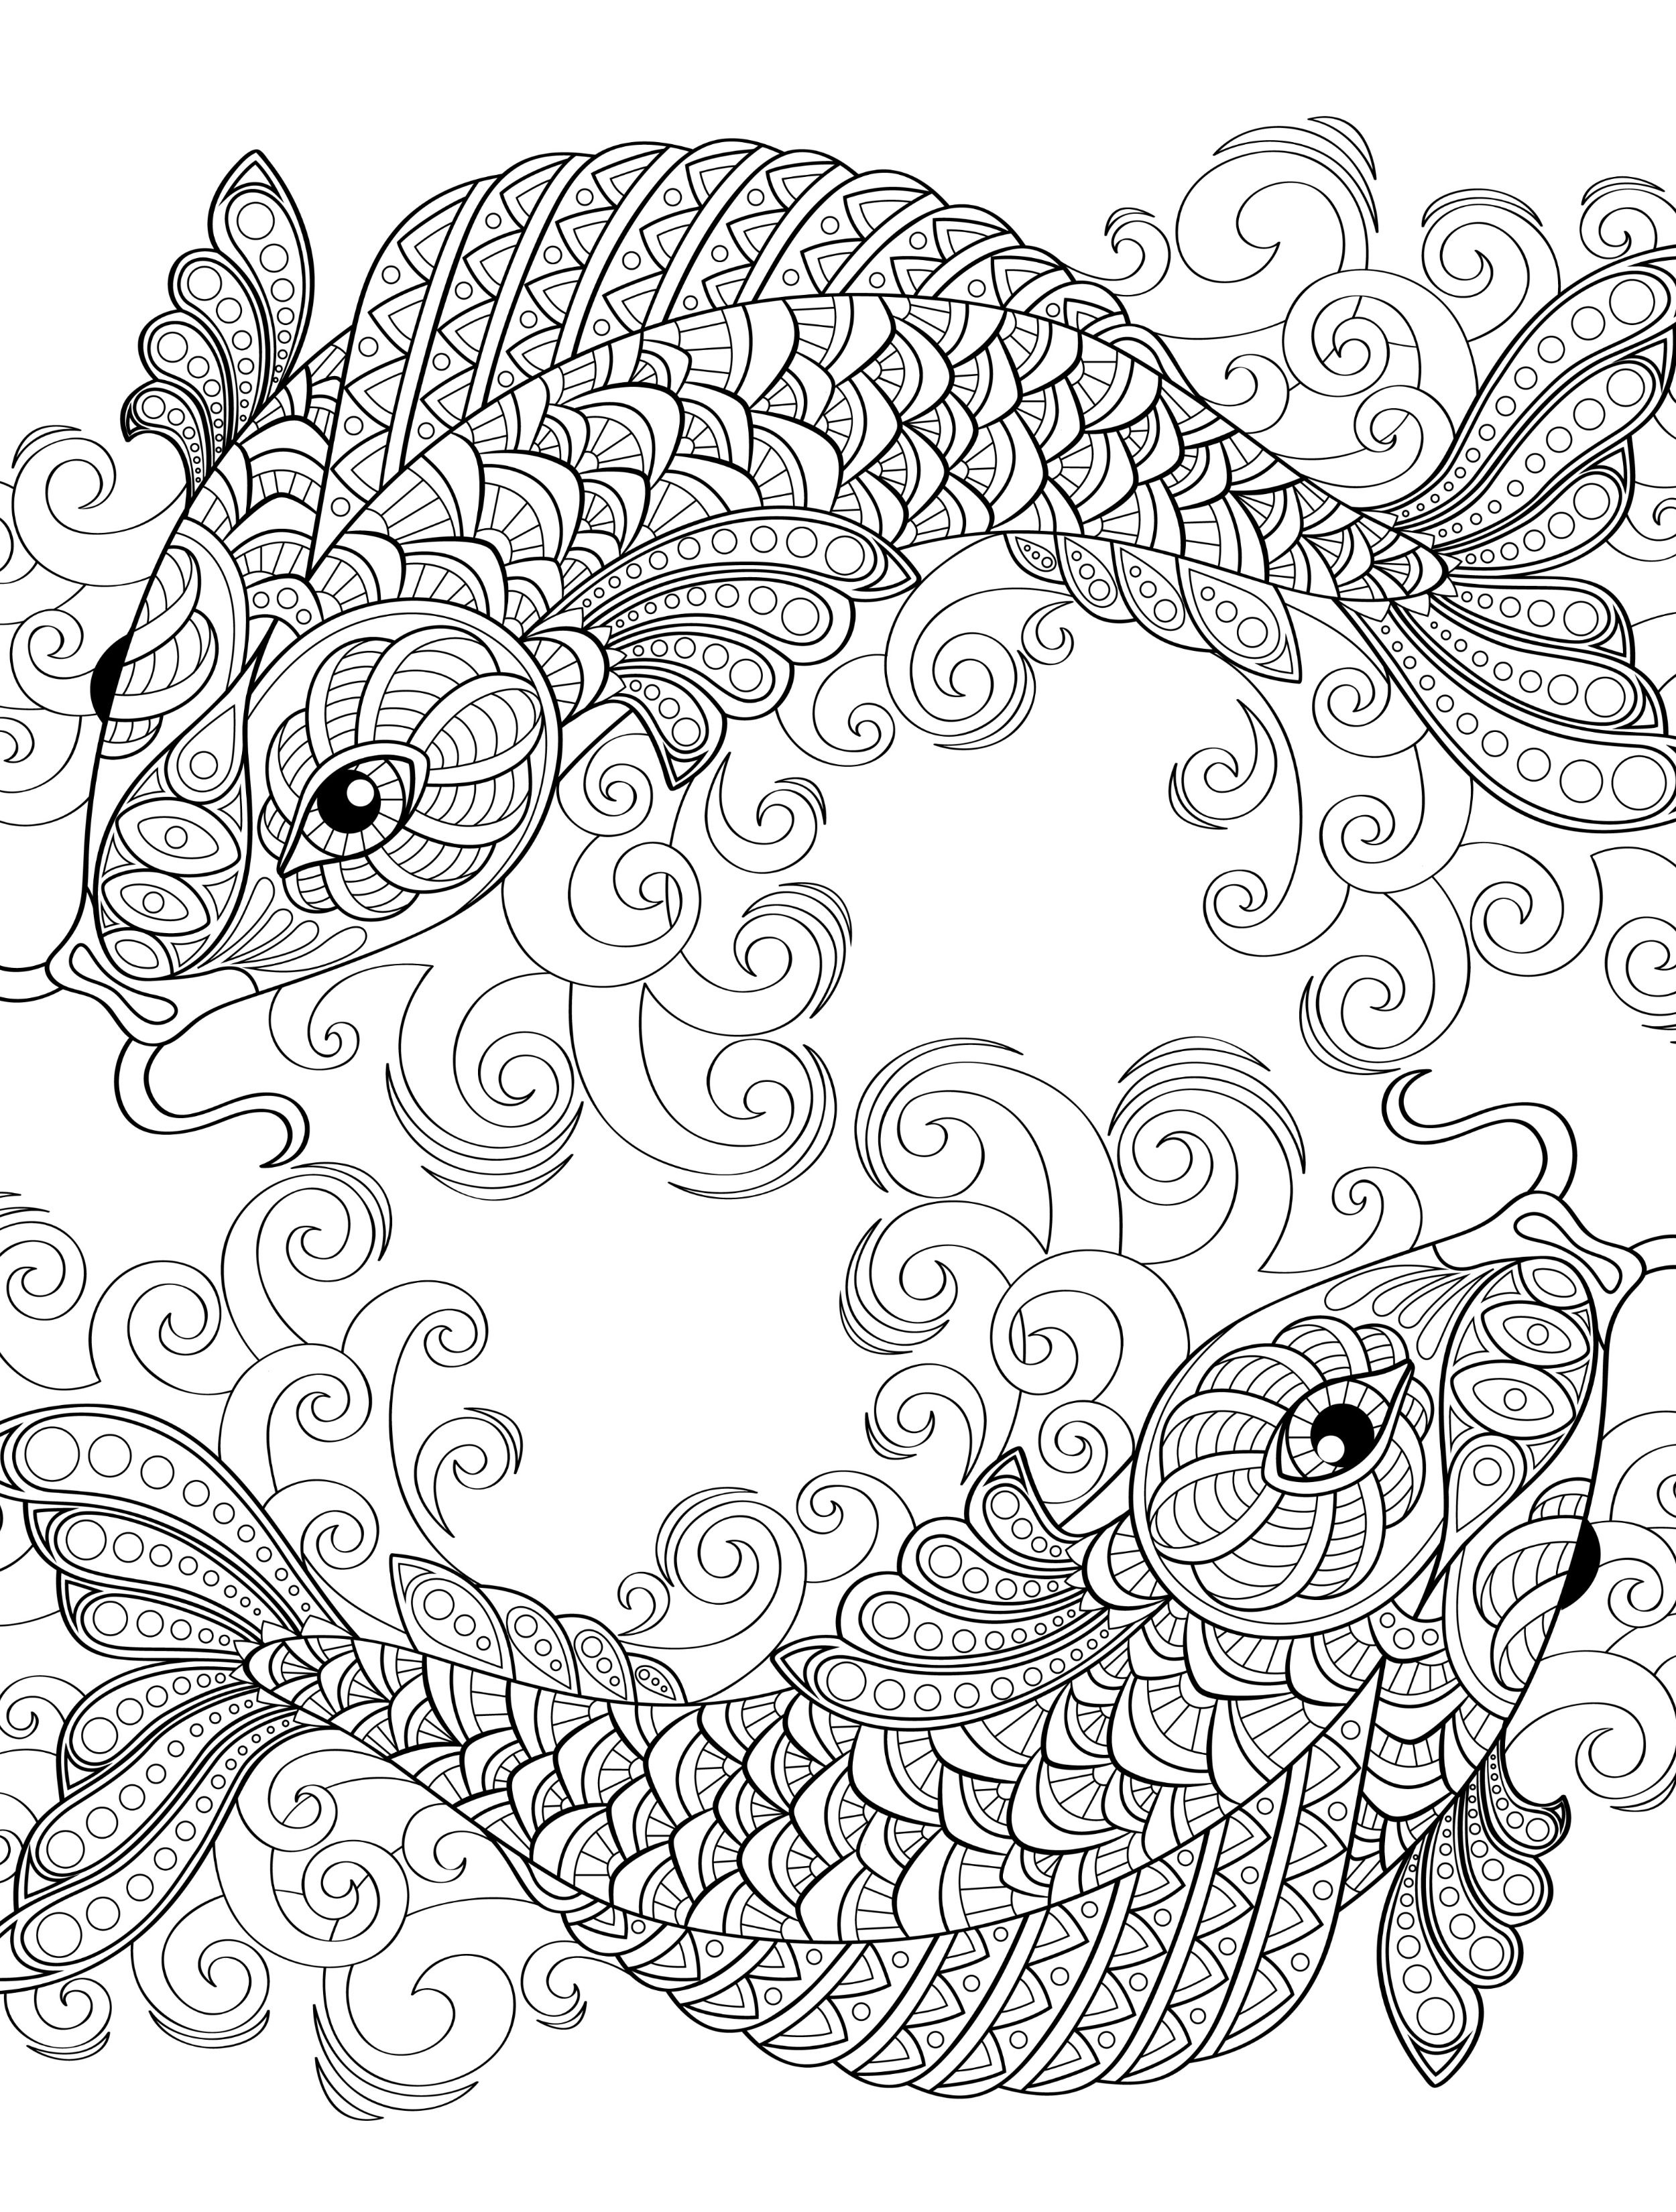 printable adults coloring pages free - photo#23